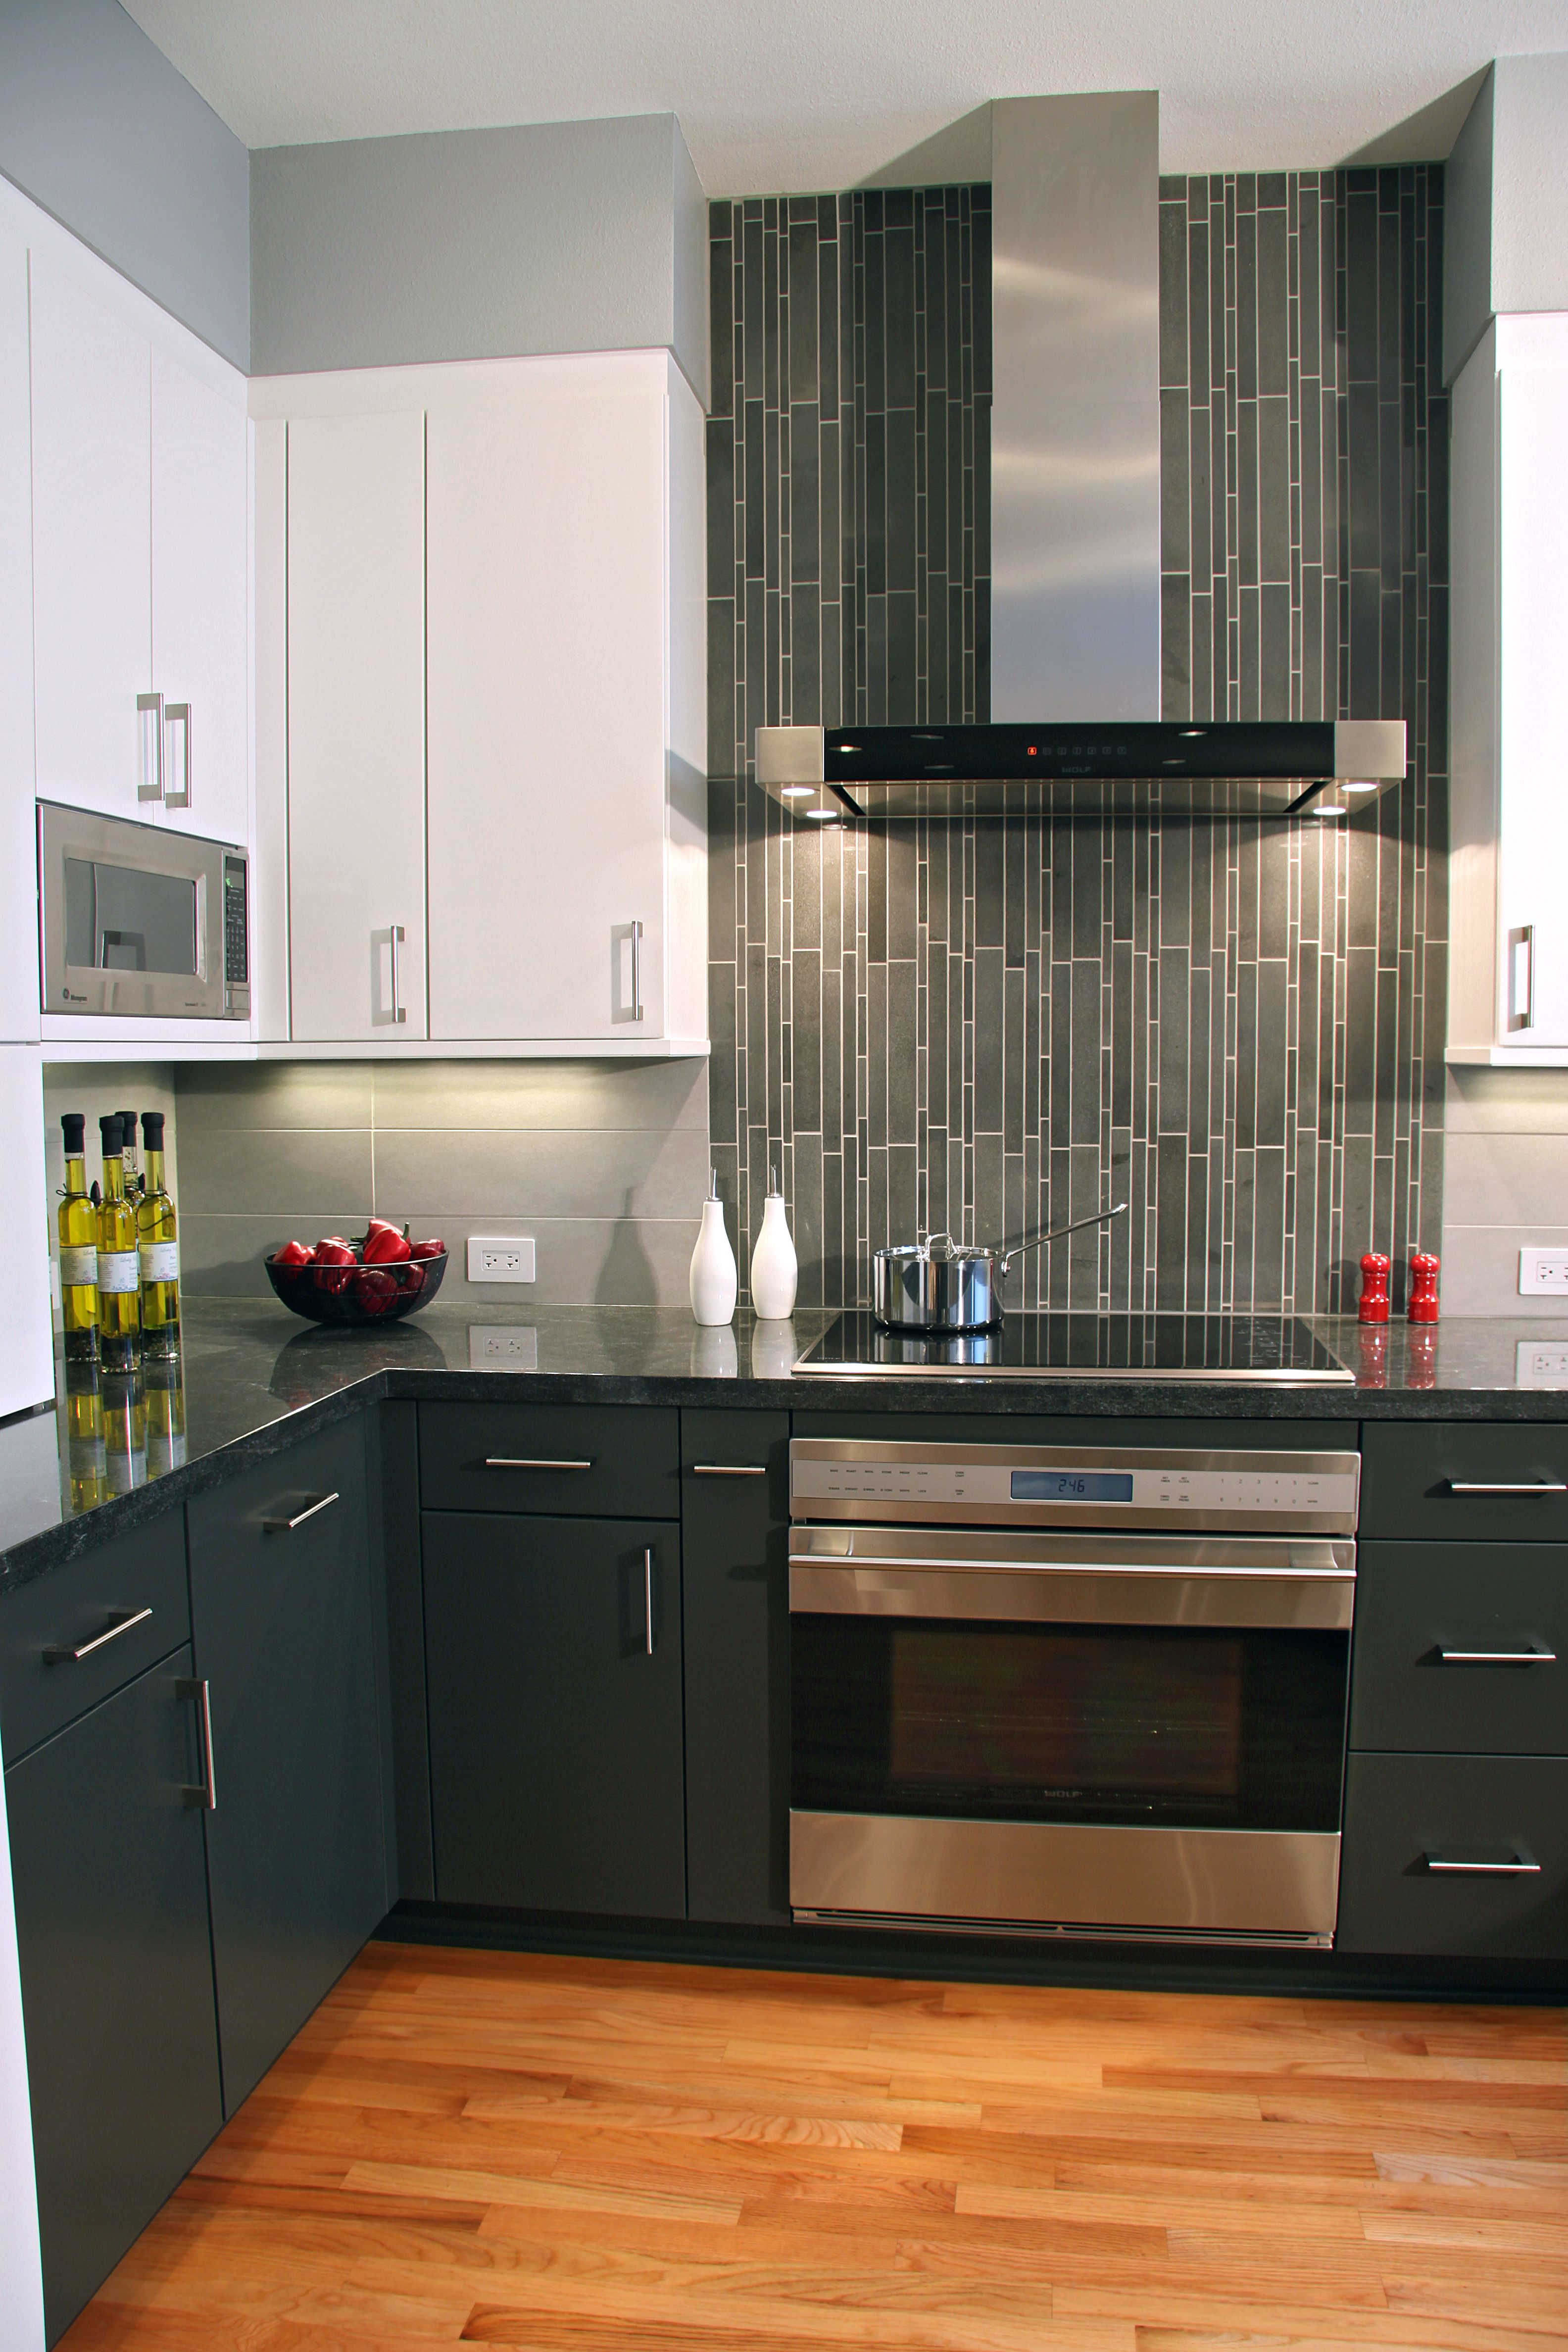 Pin by Gridley Company on Gridley Portfolio Kitchens